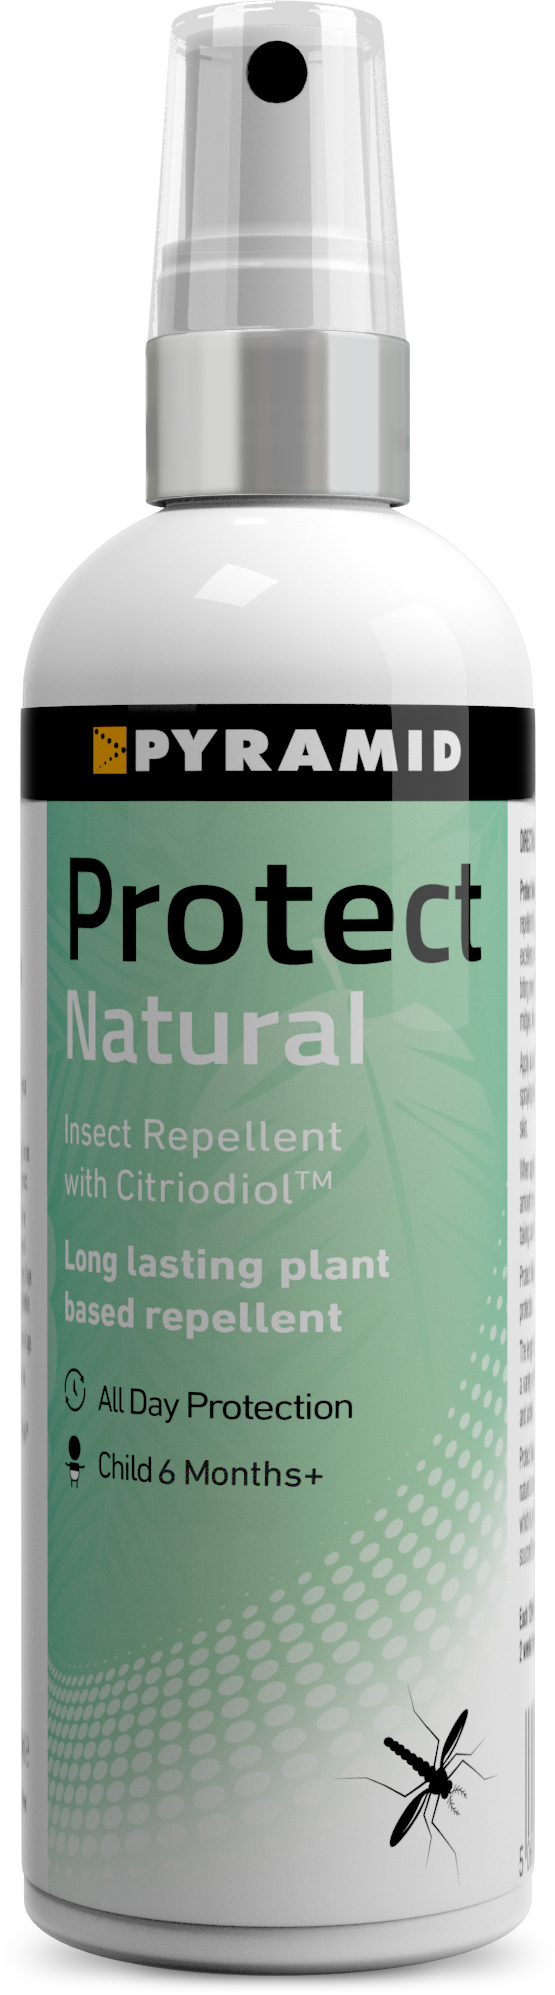 Pyramid Protect Natural Insect Repellent 100ml